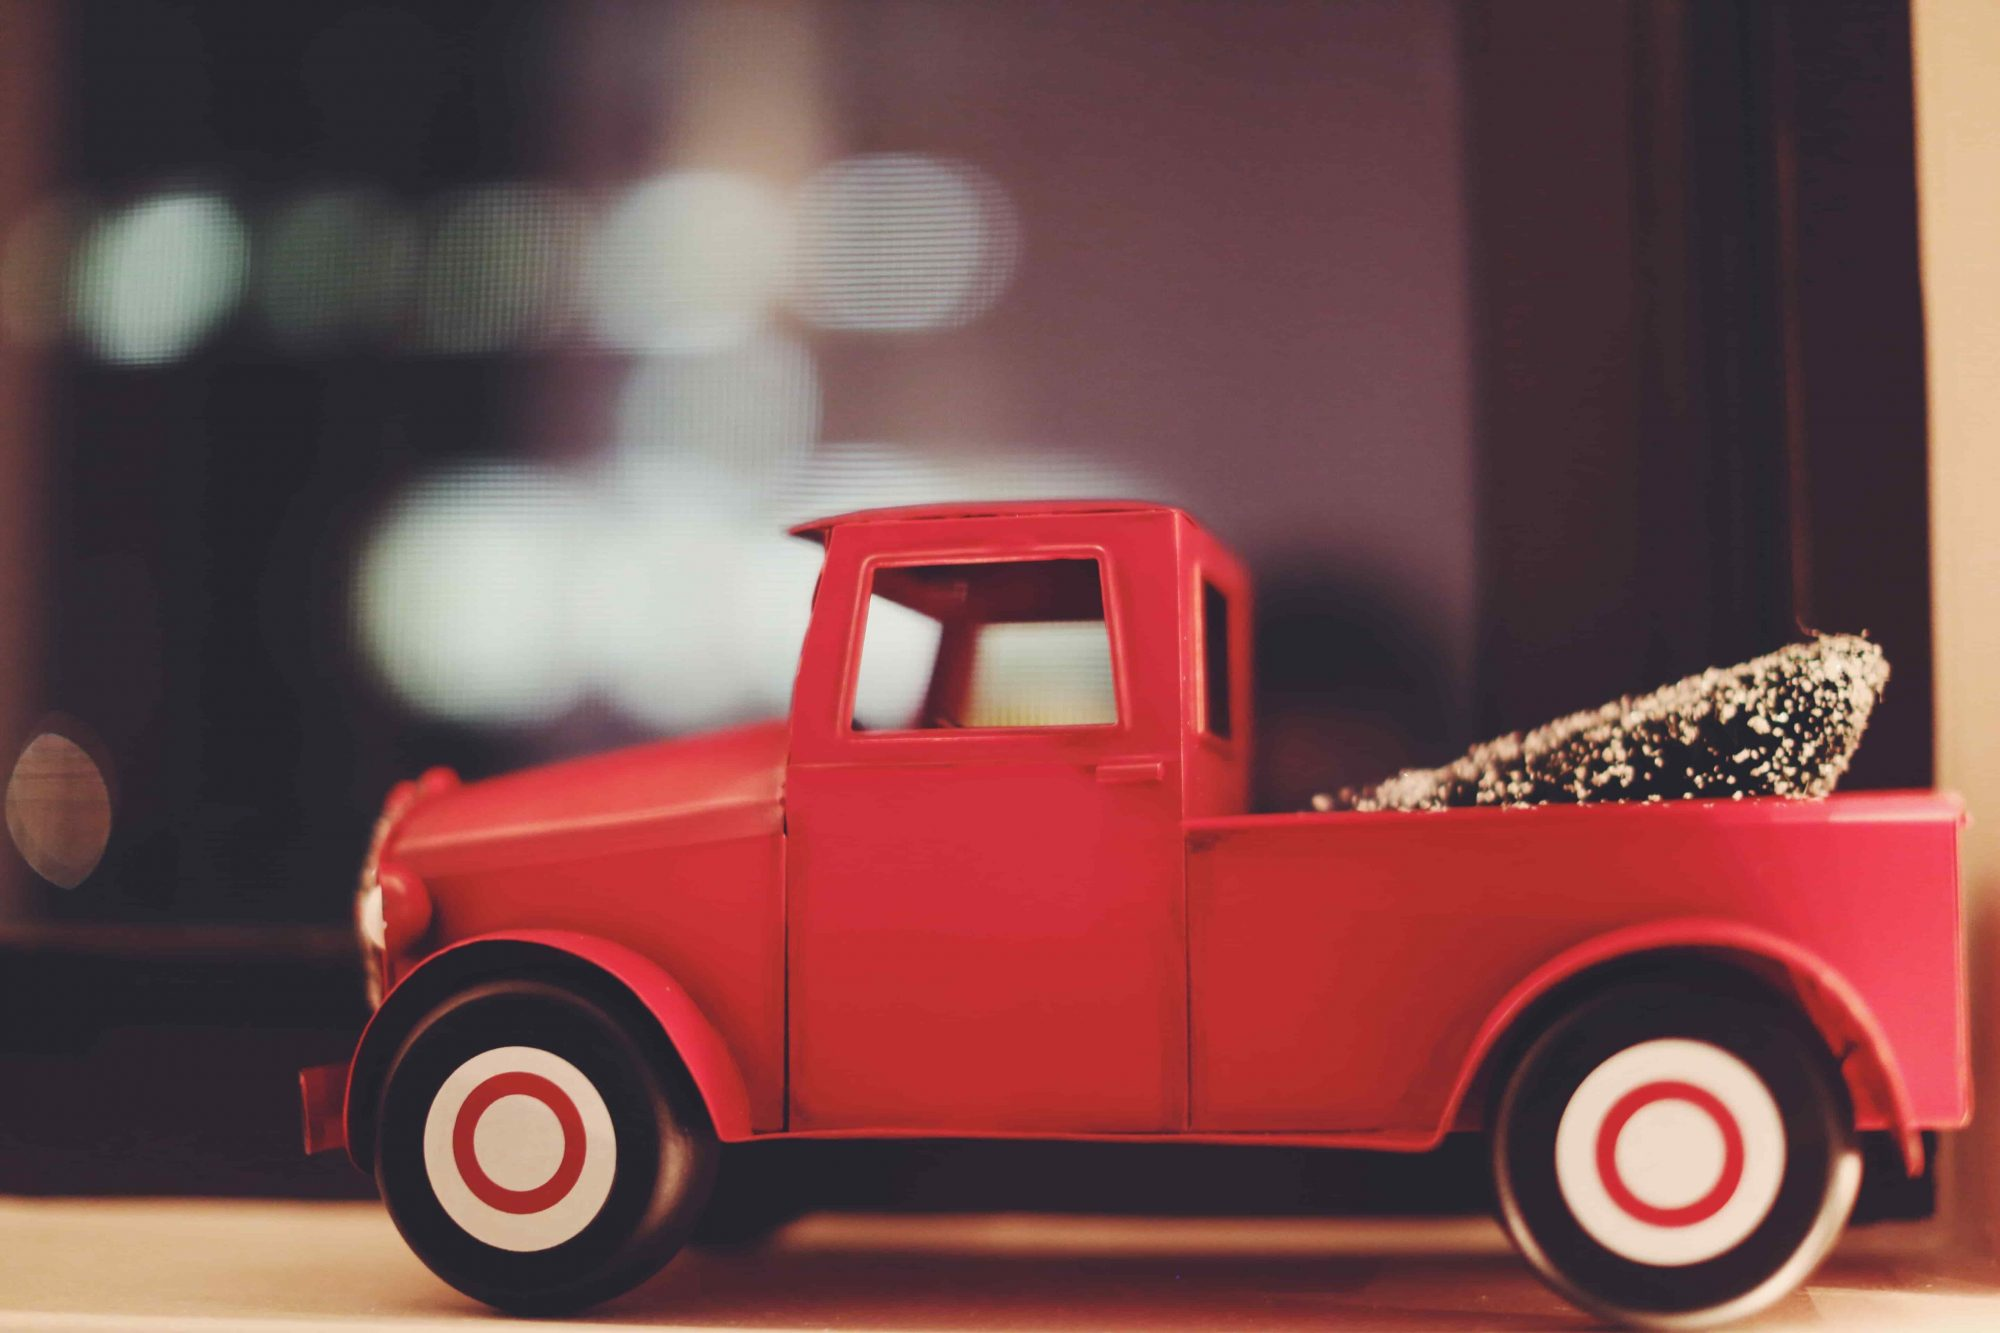 A red plastic pickup truck with a fake Christmas tree in the back.